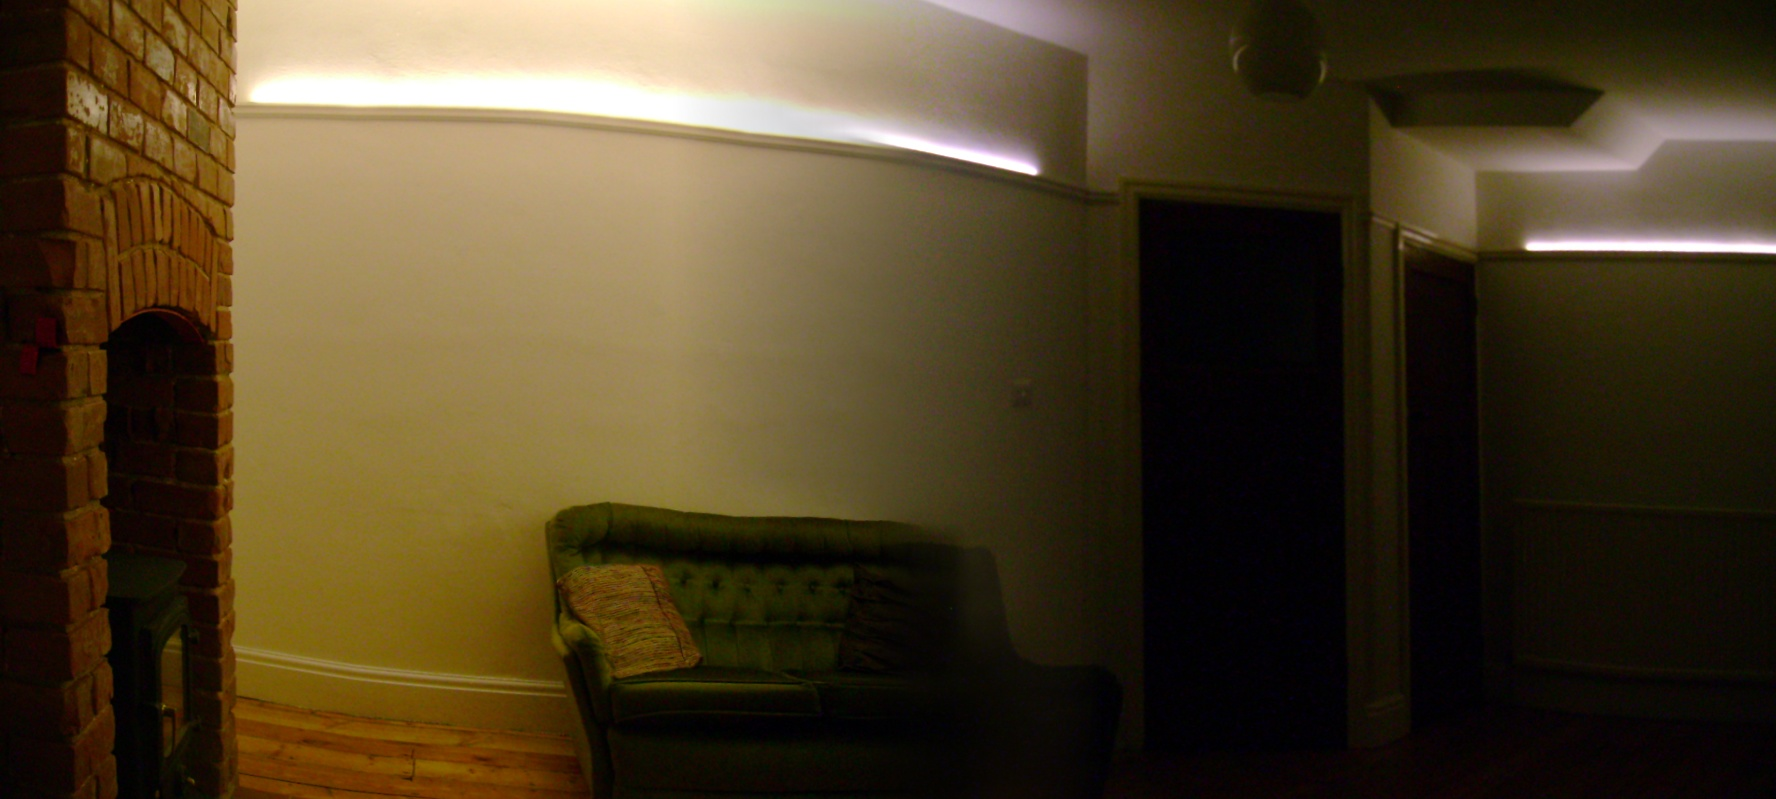 ... room has no direct window, so the lights provide bright diffuse light